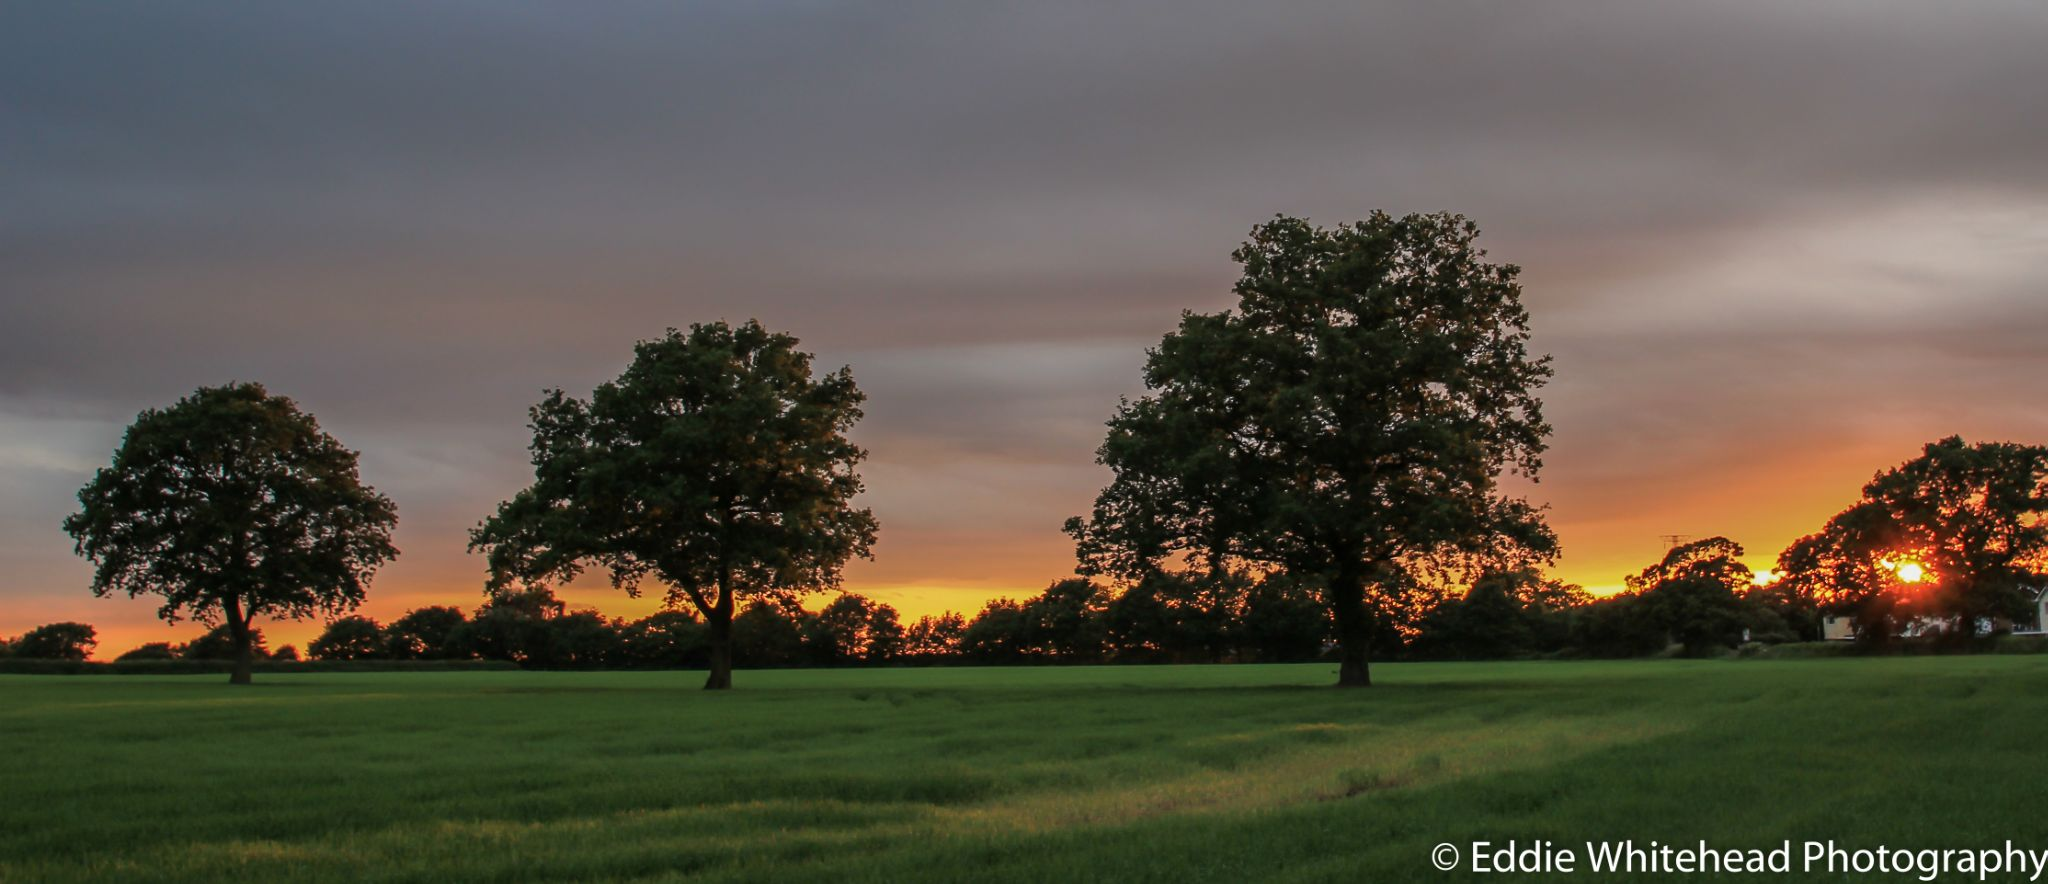 View opposite my house in Knutsford by eddiewhiteheadphotography